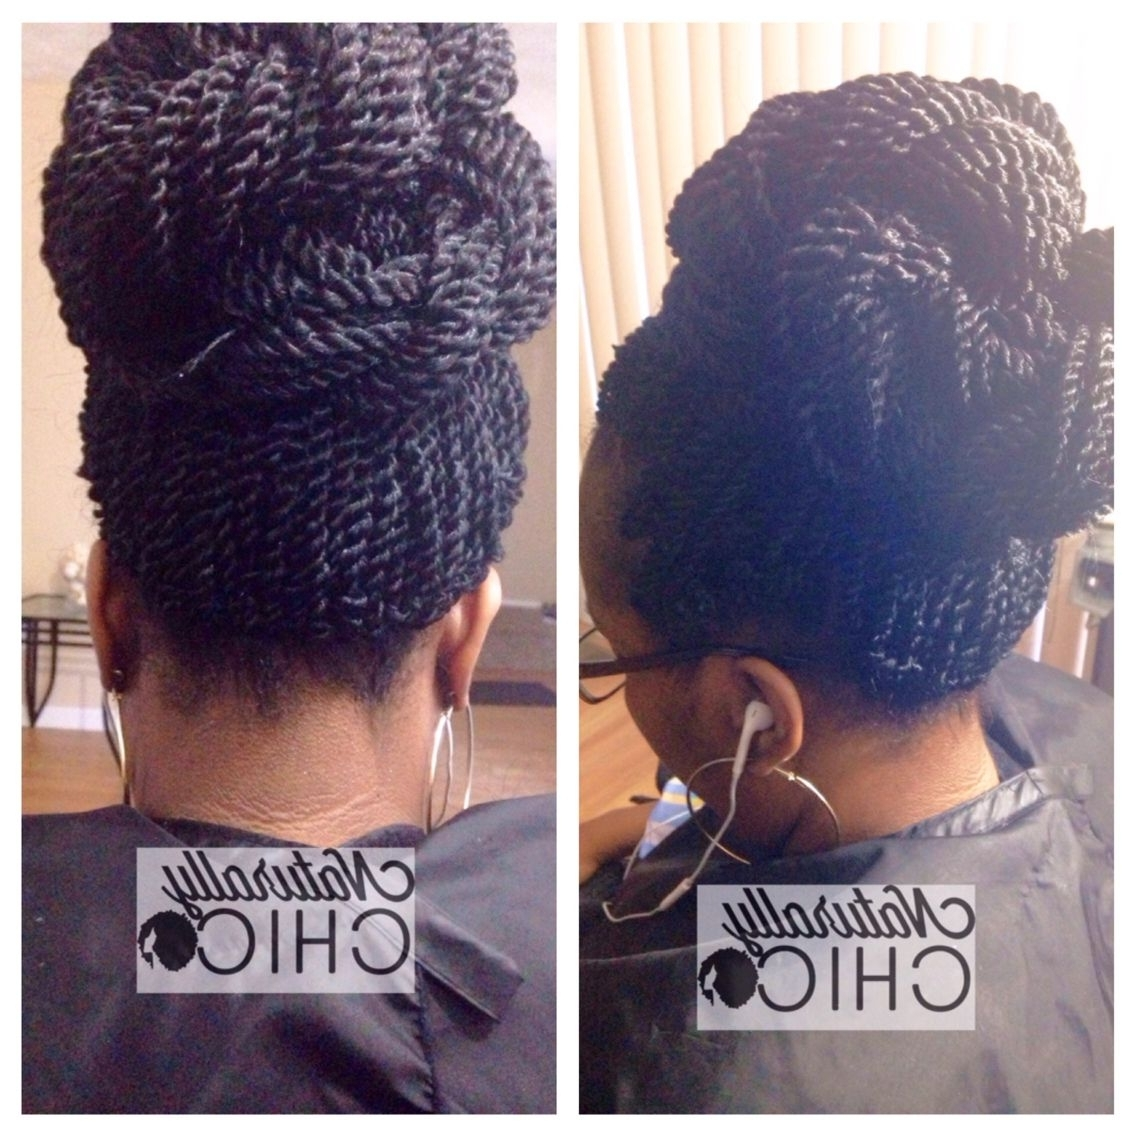 Crochet Senegalese Twists Styled In Bun Updo Style | Hair Inside Senegalese Twist Styles Updo Hairstyles (View 4 of 15)